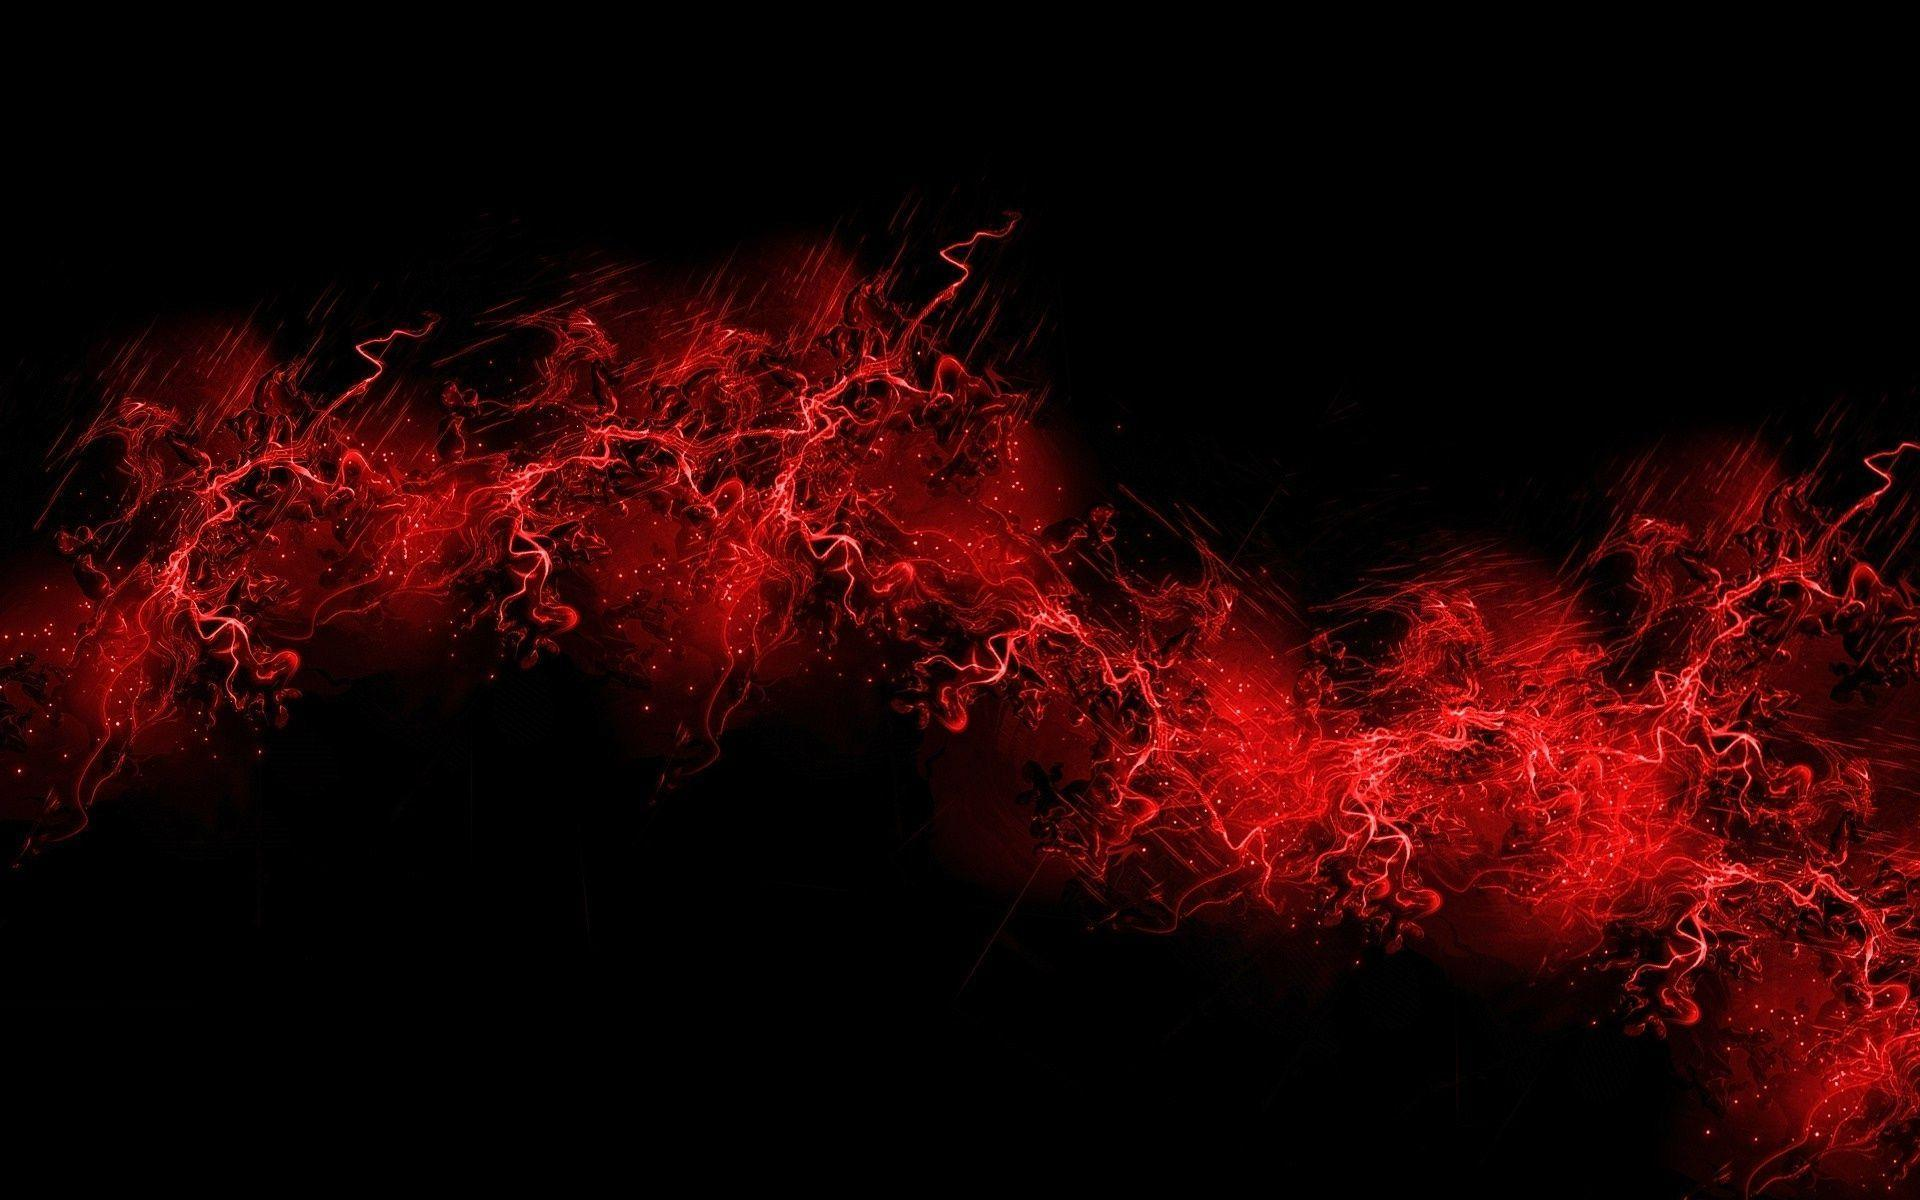 Dark Abstract Wallpapers Widescreen Red And Black Abstract Backgrounds Wallpaper Cave